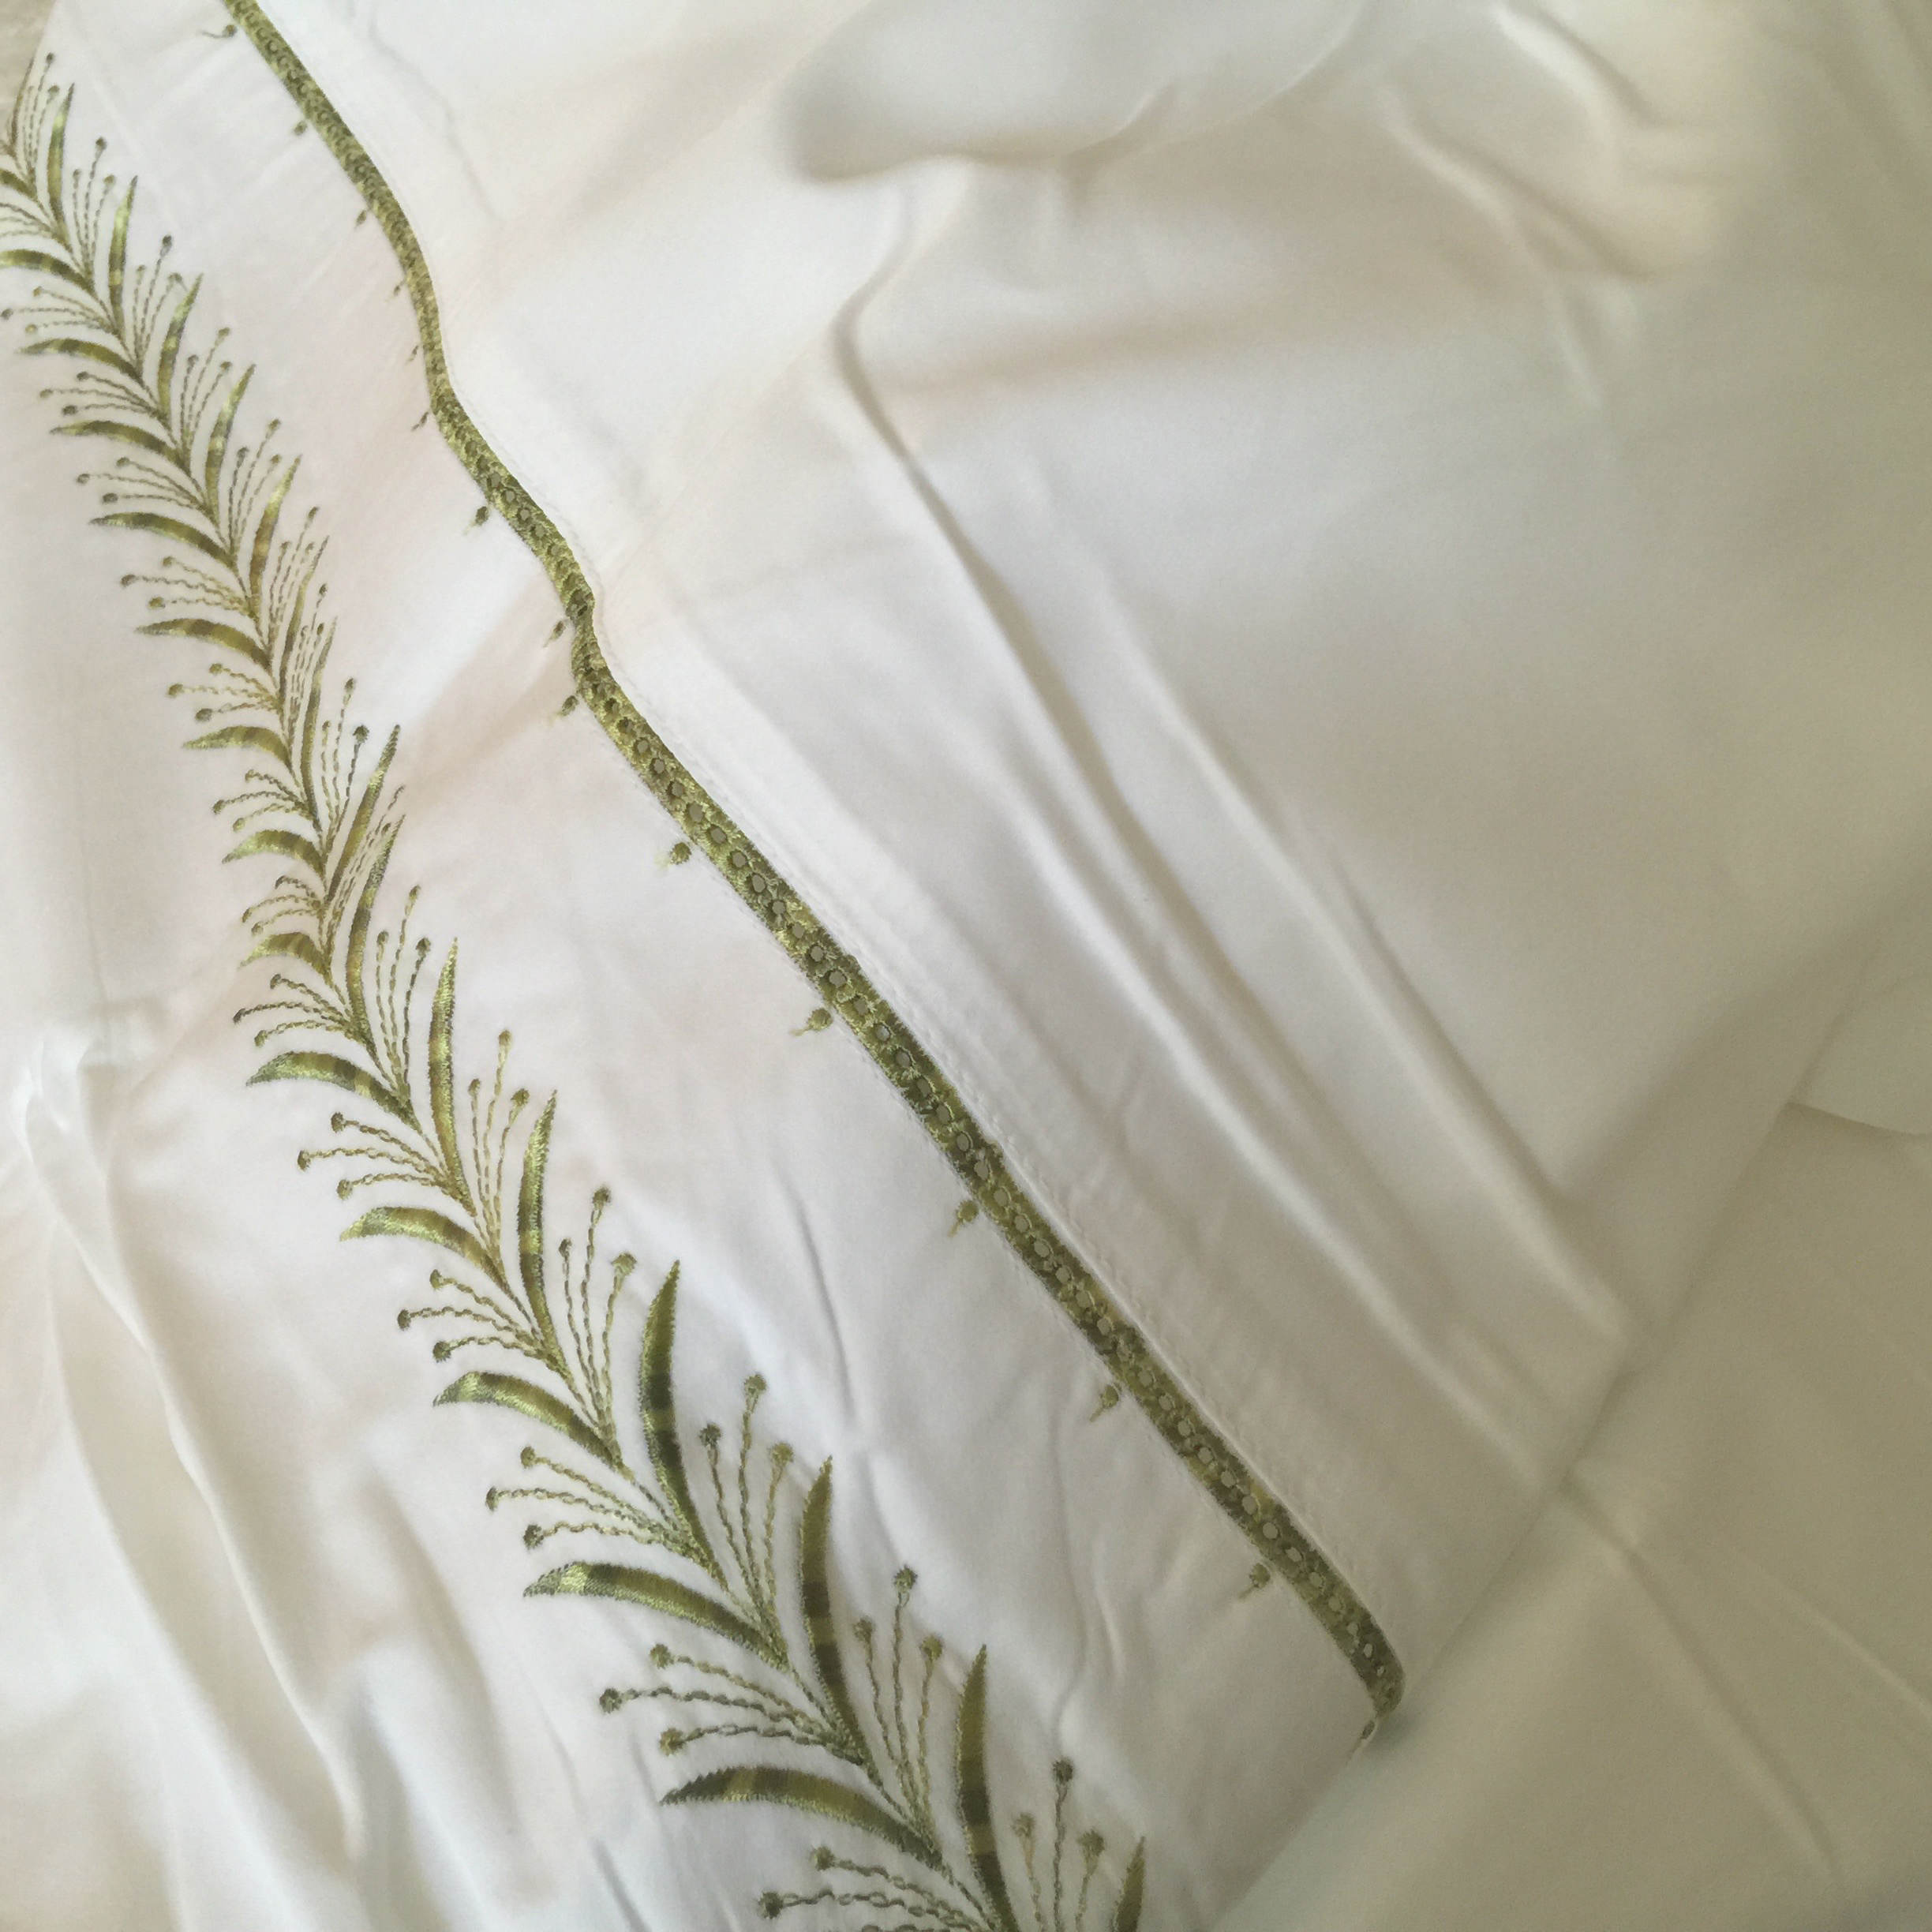 buying bed sheets - detail before washing of perfectlinens.com second skin fern green 400 thread count sateen king bed sheet set - Atticmag